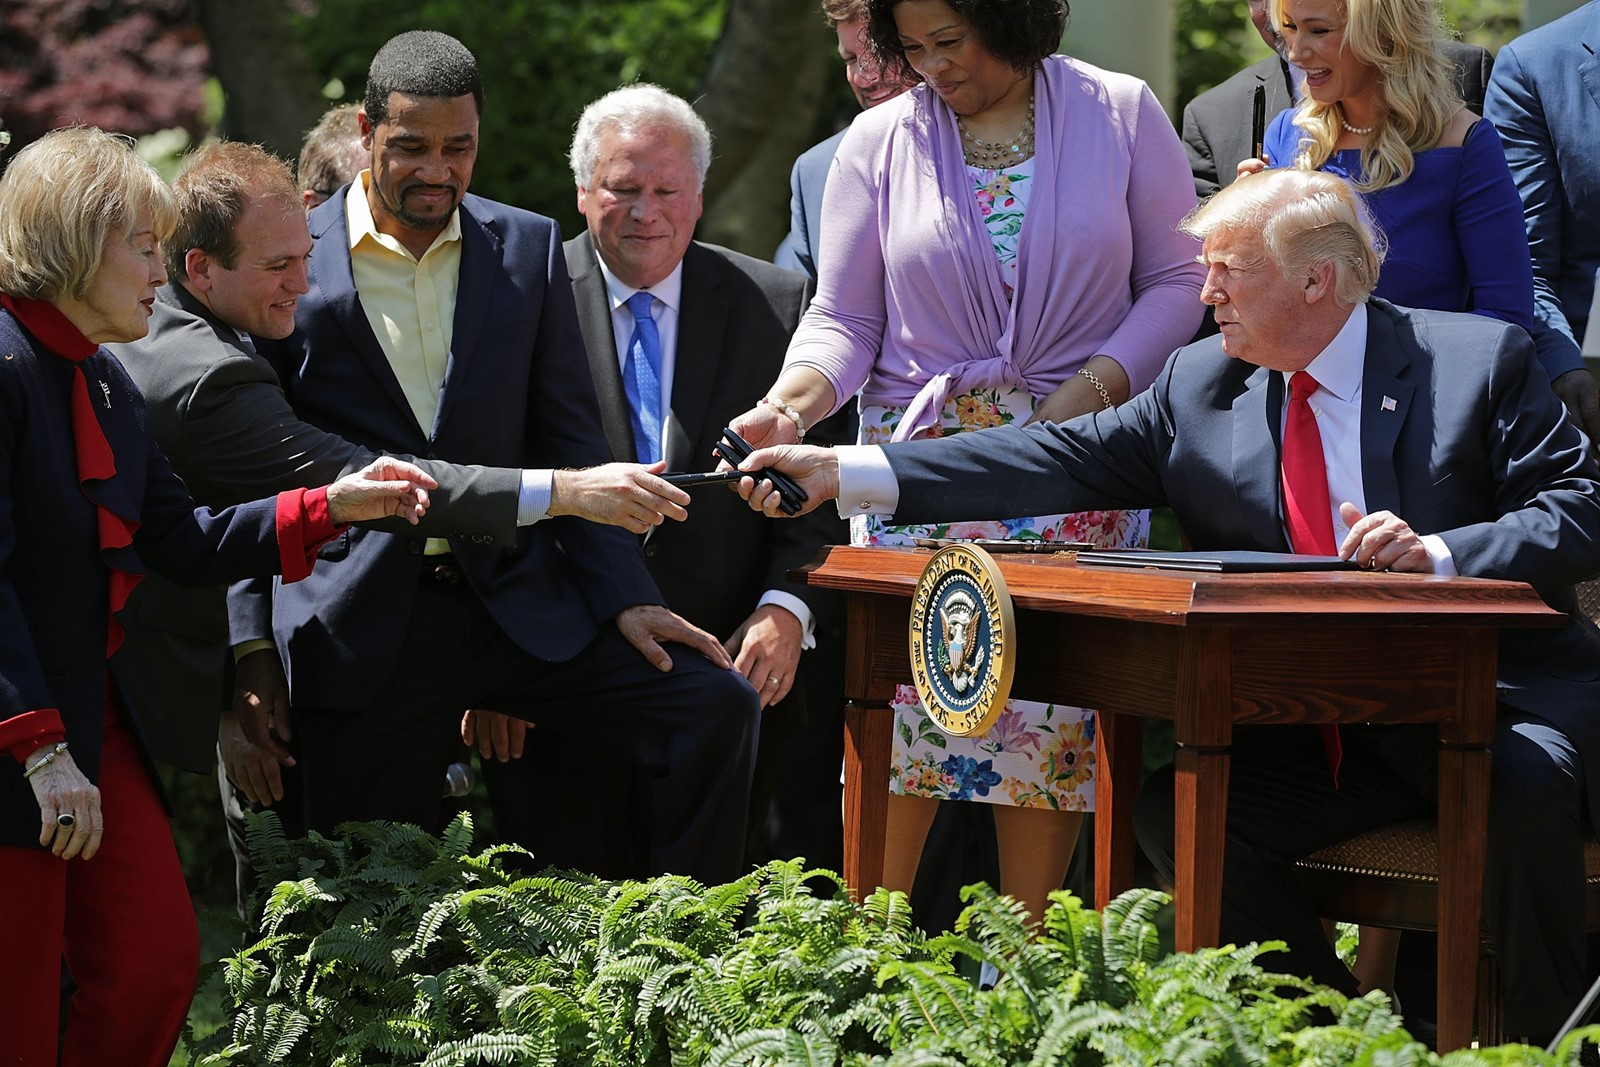 President Donald J. Trump turned his attention from the scandal to the National Day of Prayer, inviting faith leaders to his Rose Garden signing of an executive order creating a White House advisor on religious liberty. — Photograph: Chip Somodevilla/Getty Images.